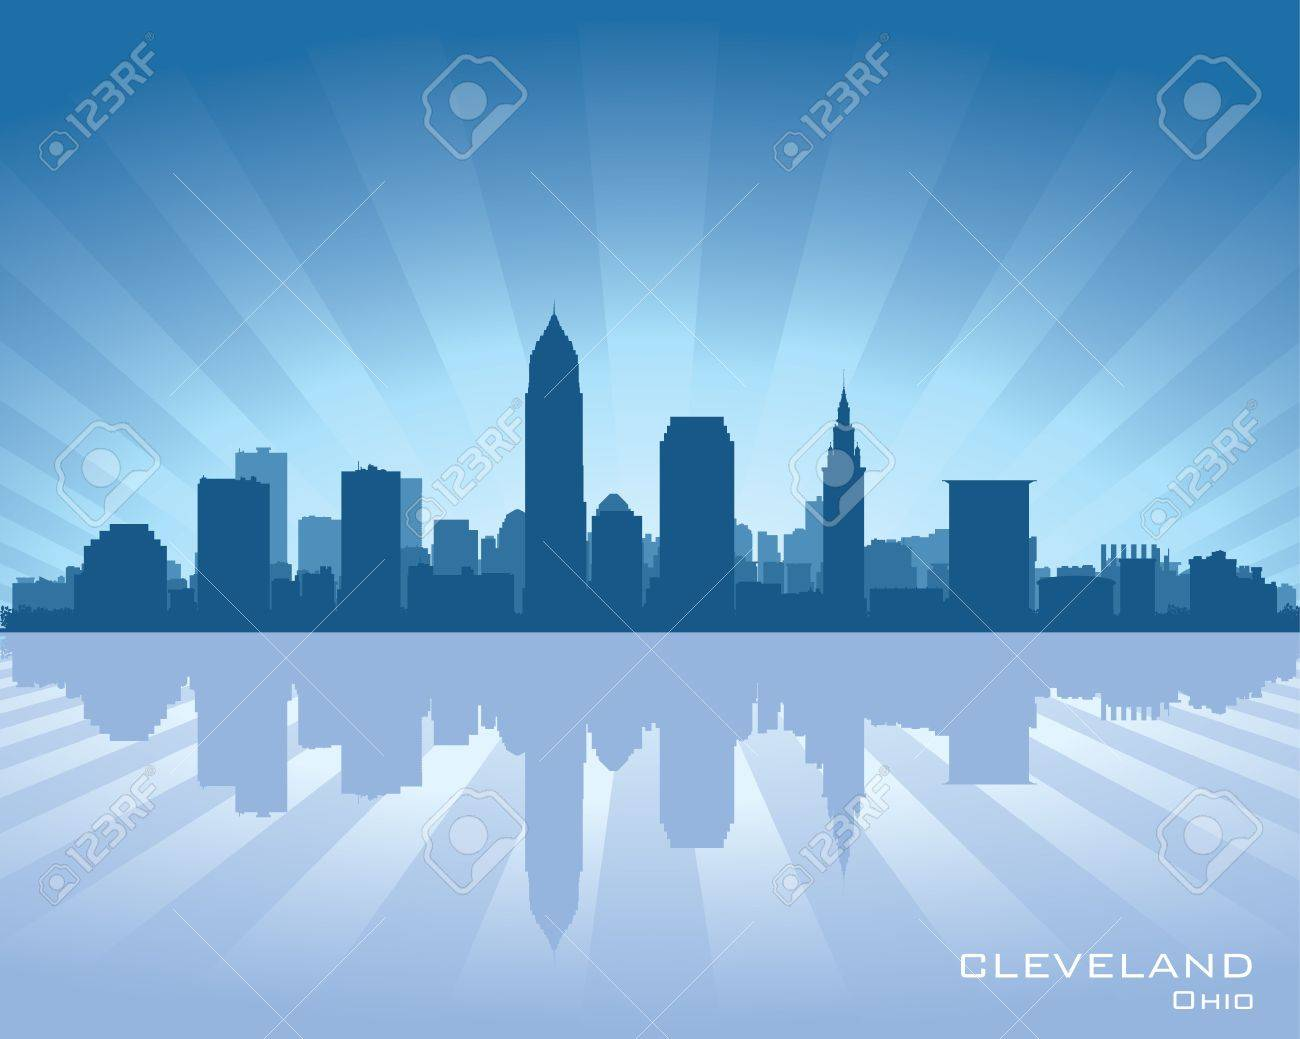 Cleveland, Ohio skyline illustration with reflection in water Stock Vector - 14293574